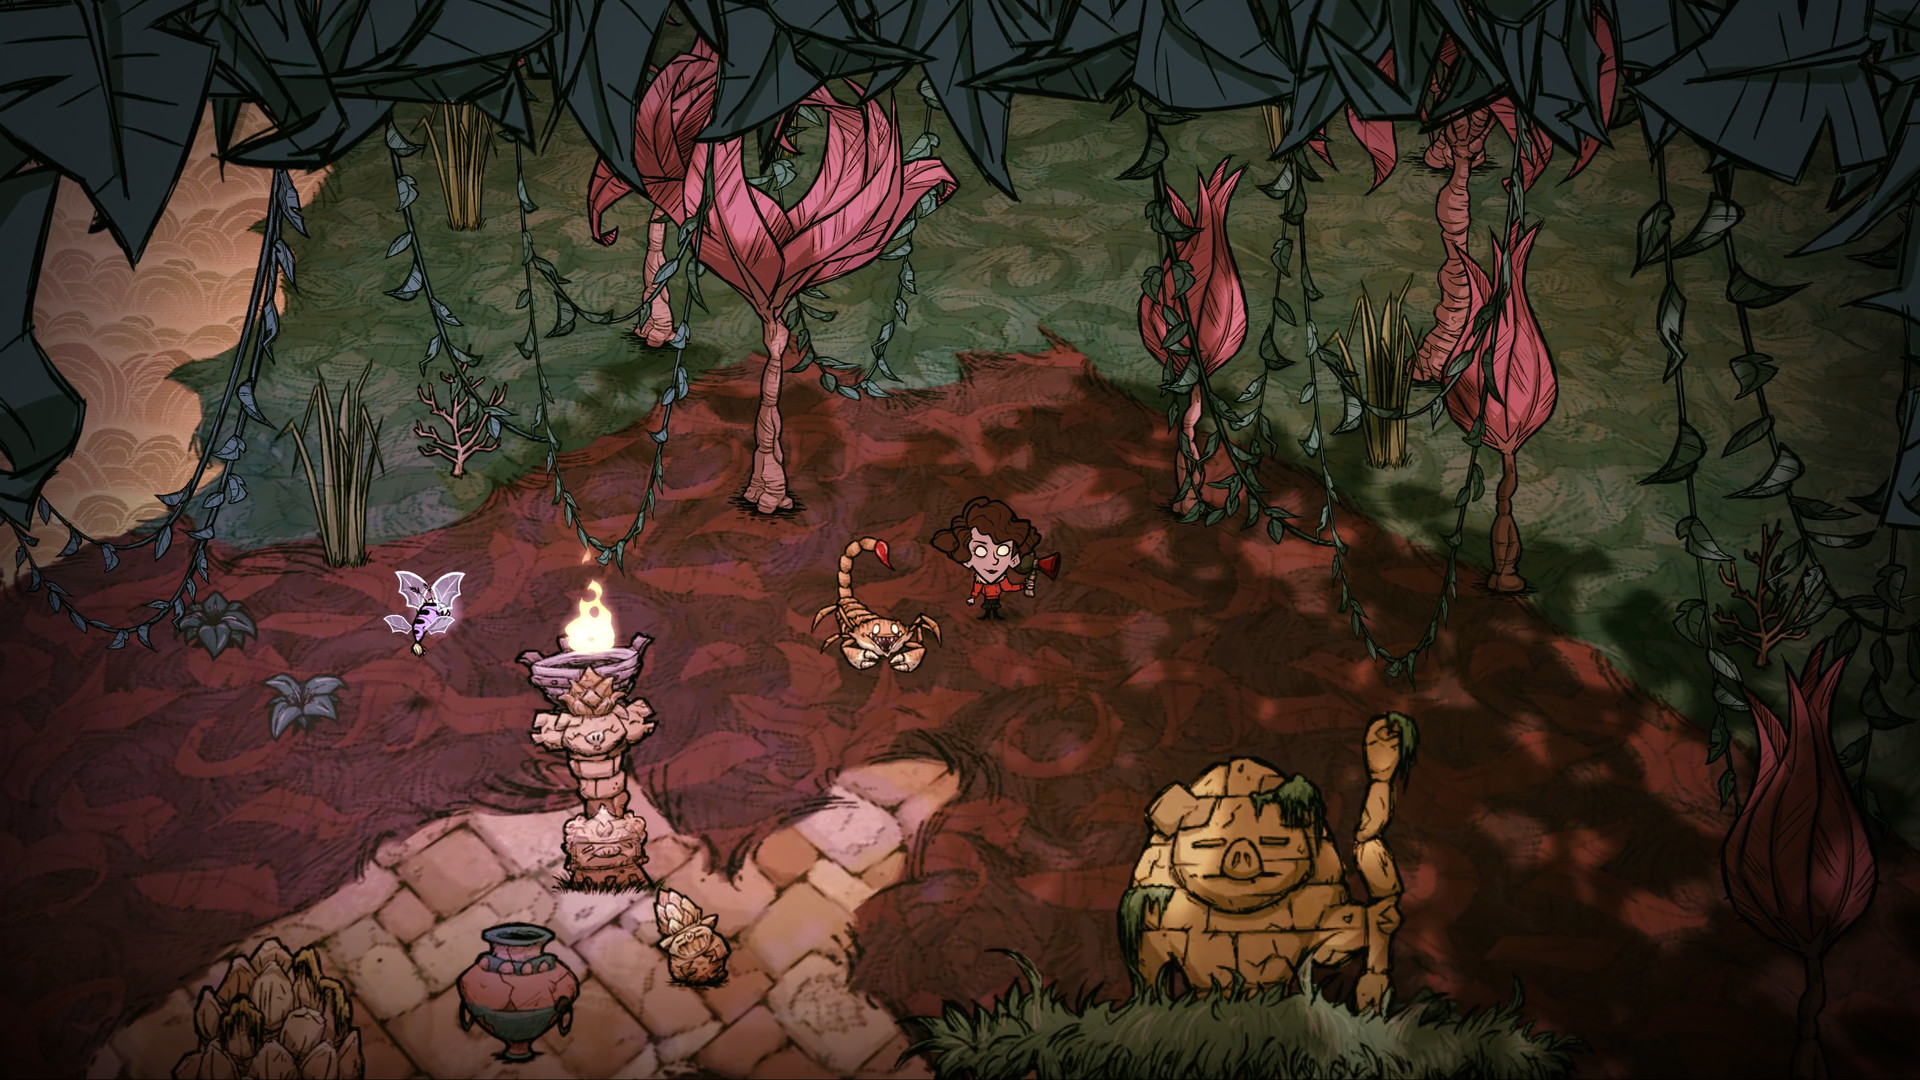 Don't Starve: Hamlet Review | Bonus Stage on bloodborne map, dark souls map, dead rising 3 map, dragon age: inquisition map, h1z1 map, dying light map, five nights at freddy's map, strider map, lords of the fallen map, damnation map, assassin's creed unity map, crackdown 2 map, icewind dale map, destiny map, axiom verge map, the crew map, terraria map, project zomboid map, the elder scrolls online map, everybody's gone to the rapture map,